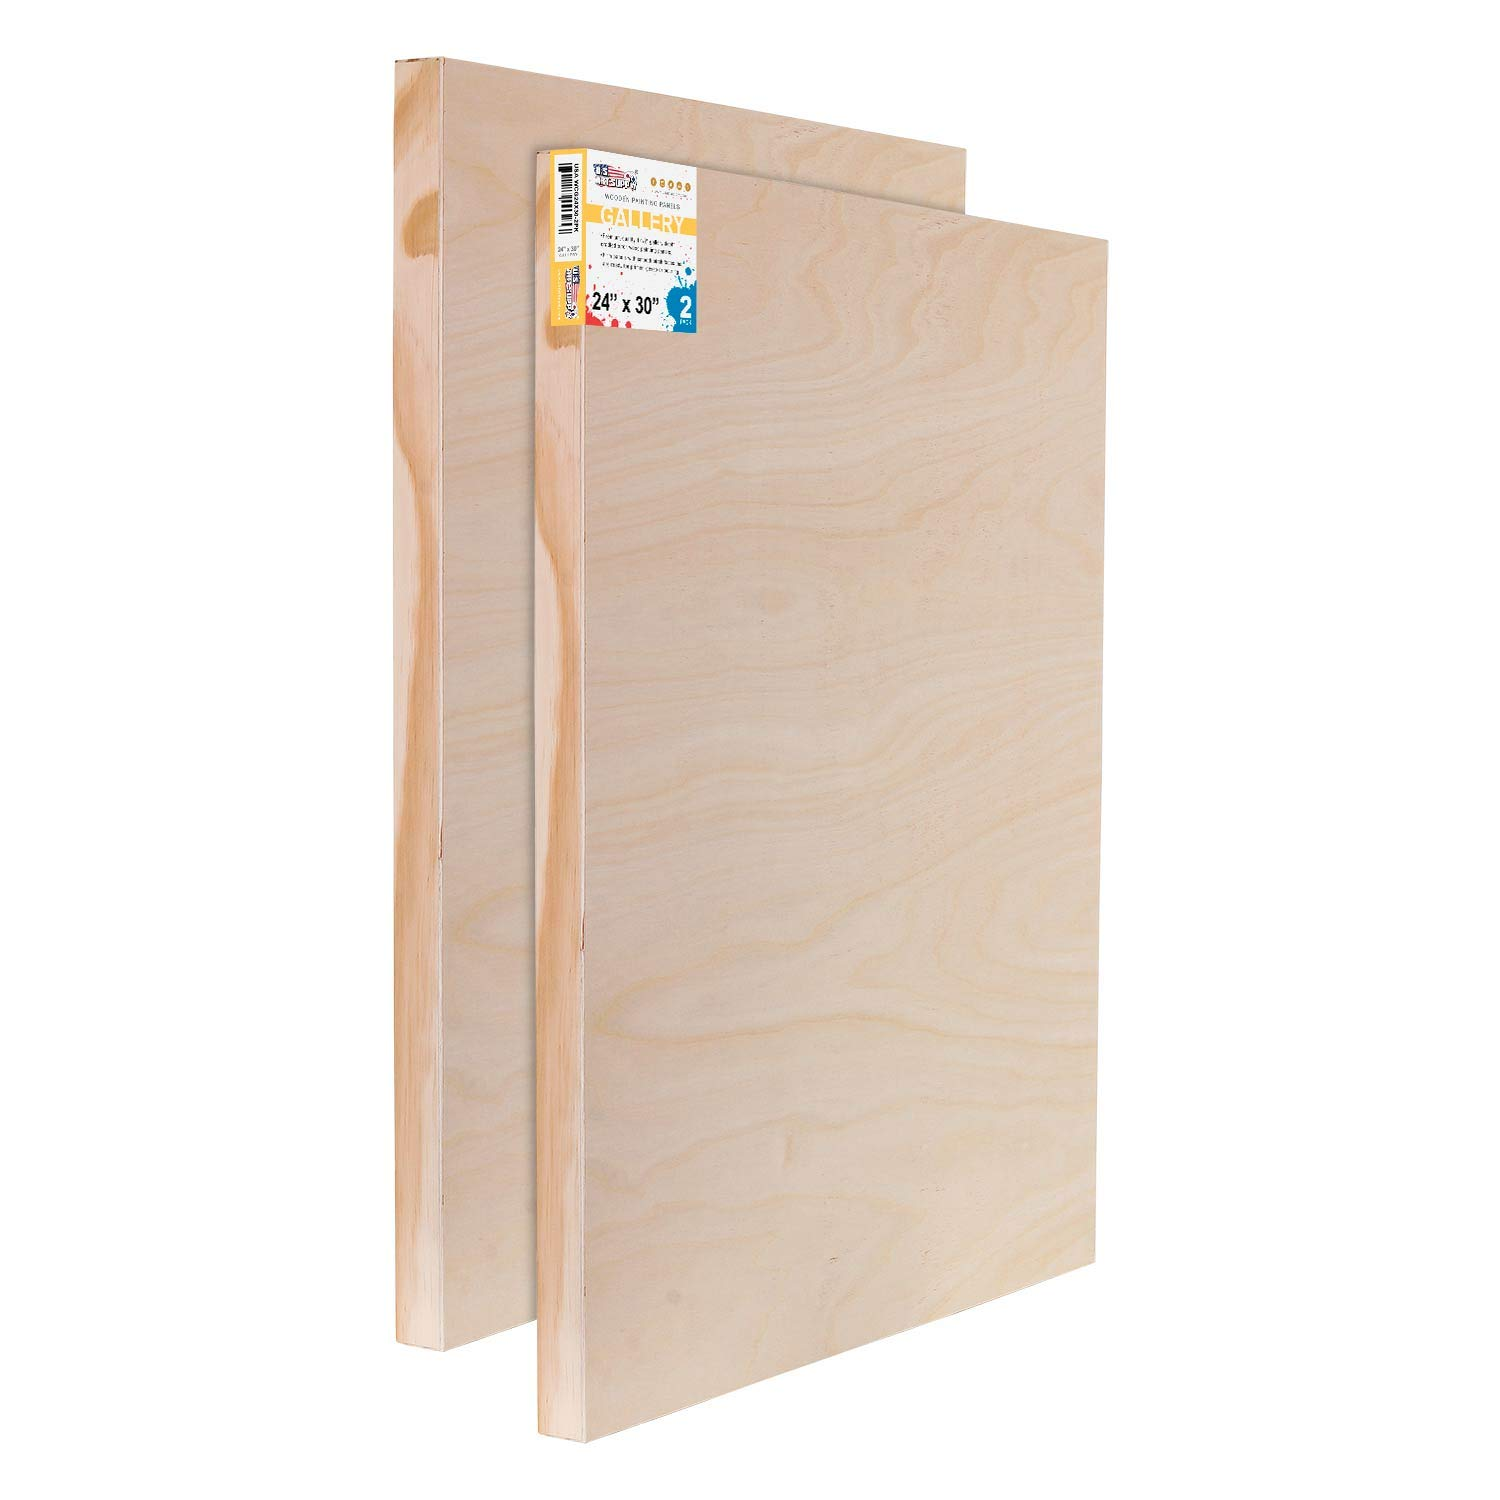 U.S. Art Supply 24'' x 30'' Birch Wood Paint Pouring Panel Boards, Gallery 1-1/2'' Deep Cradle (Pack of 2) - Artist Depth Wooden Wall Canvases - Painting Mixed-Media Craft, Acrylic, Oil, Encaustic by US Art Supply